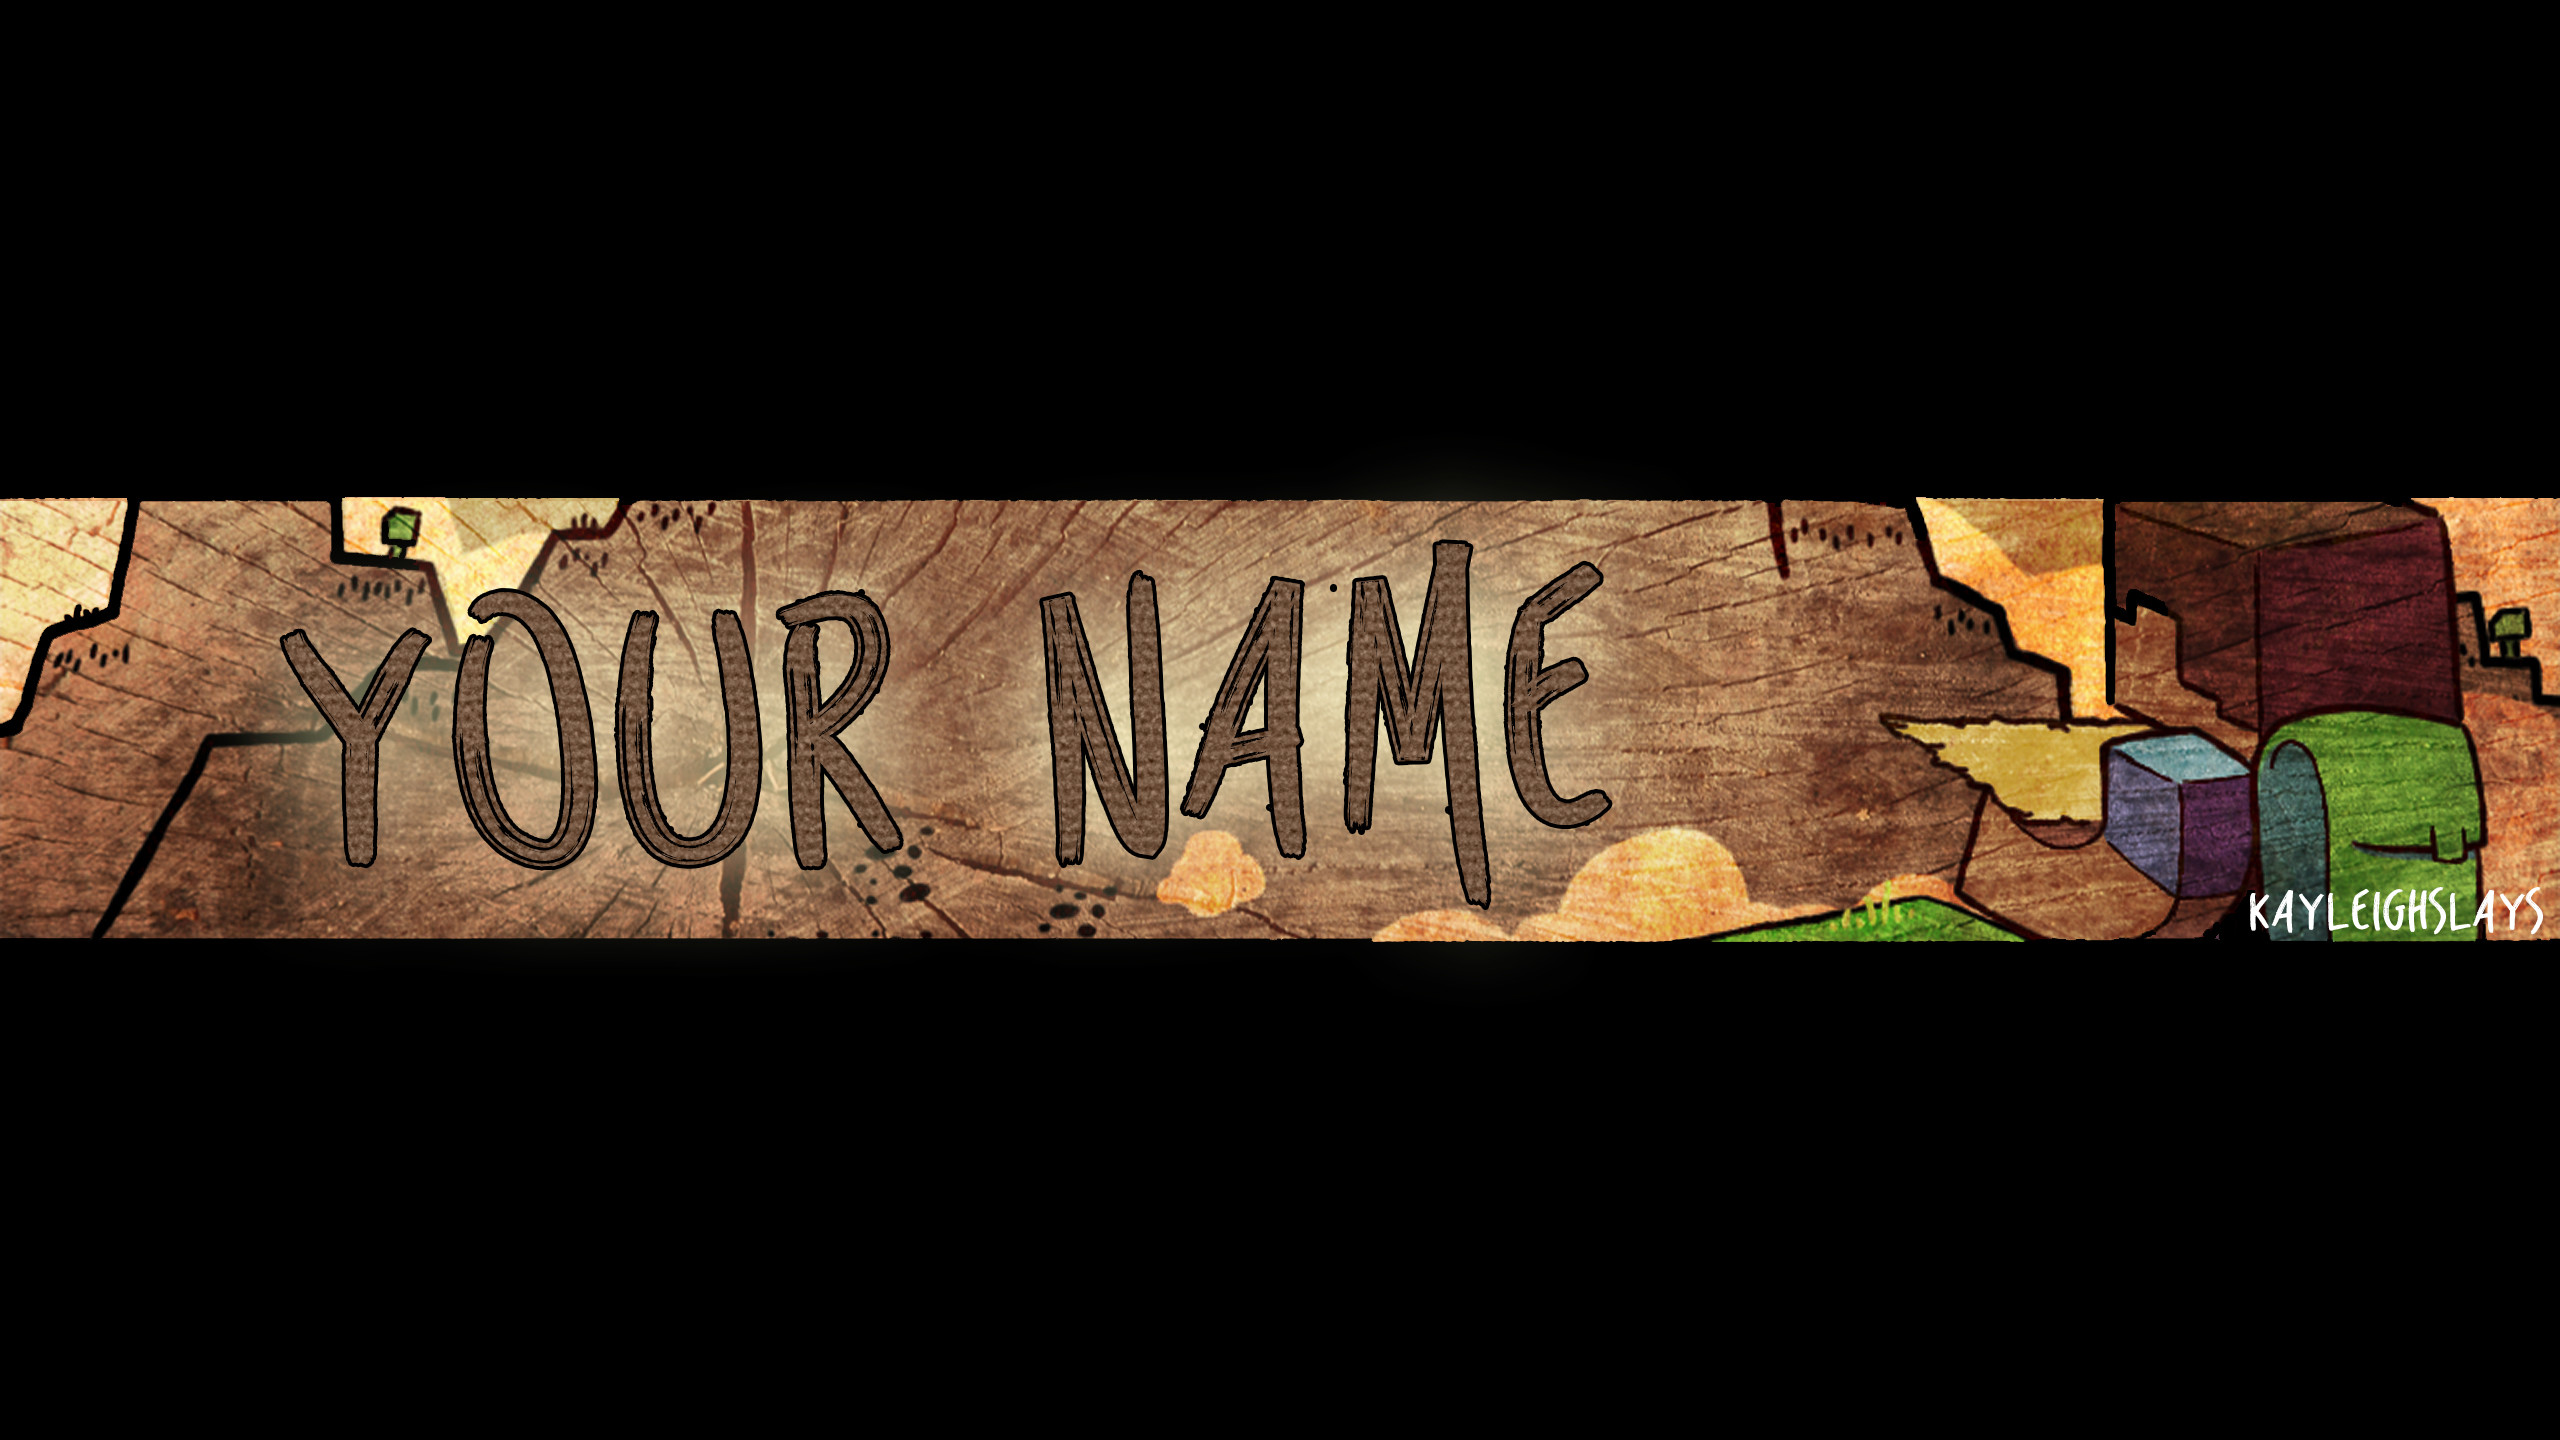 Channel Art Template (Photoshop) (5) By ItsRushed On DeviantArt